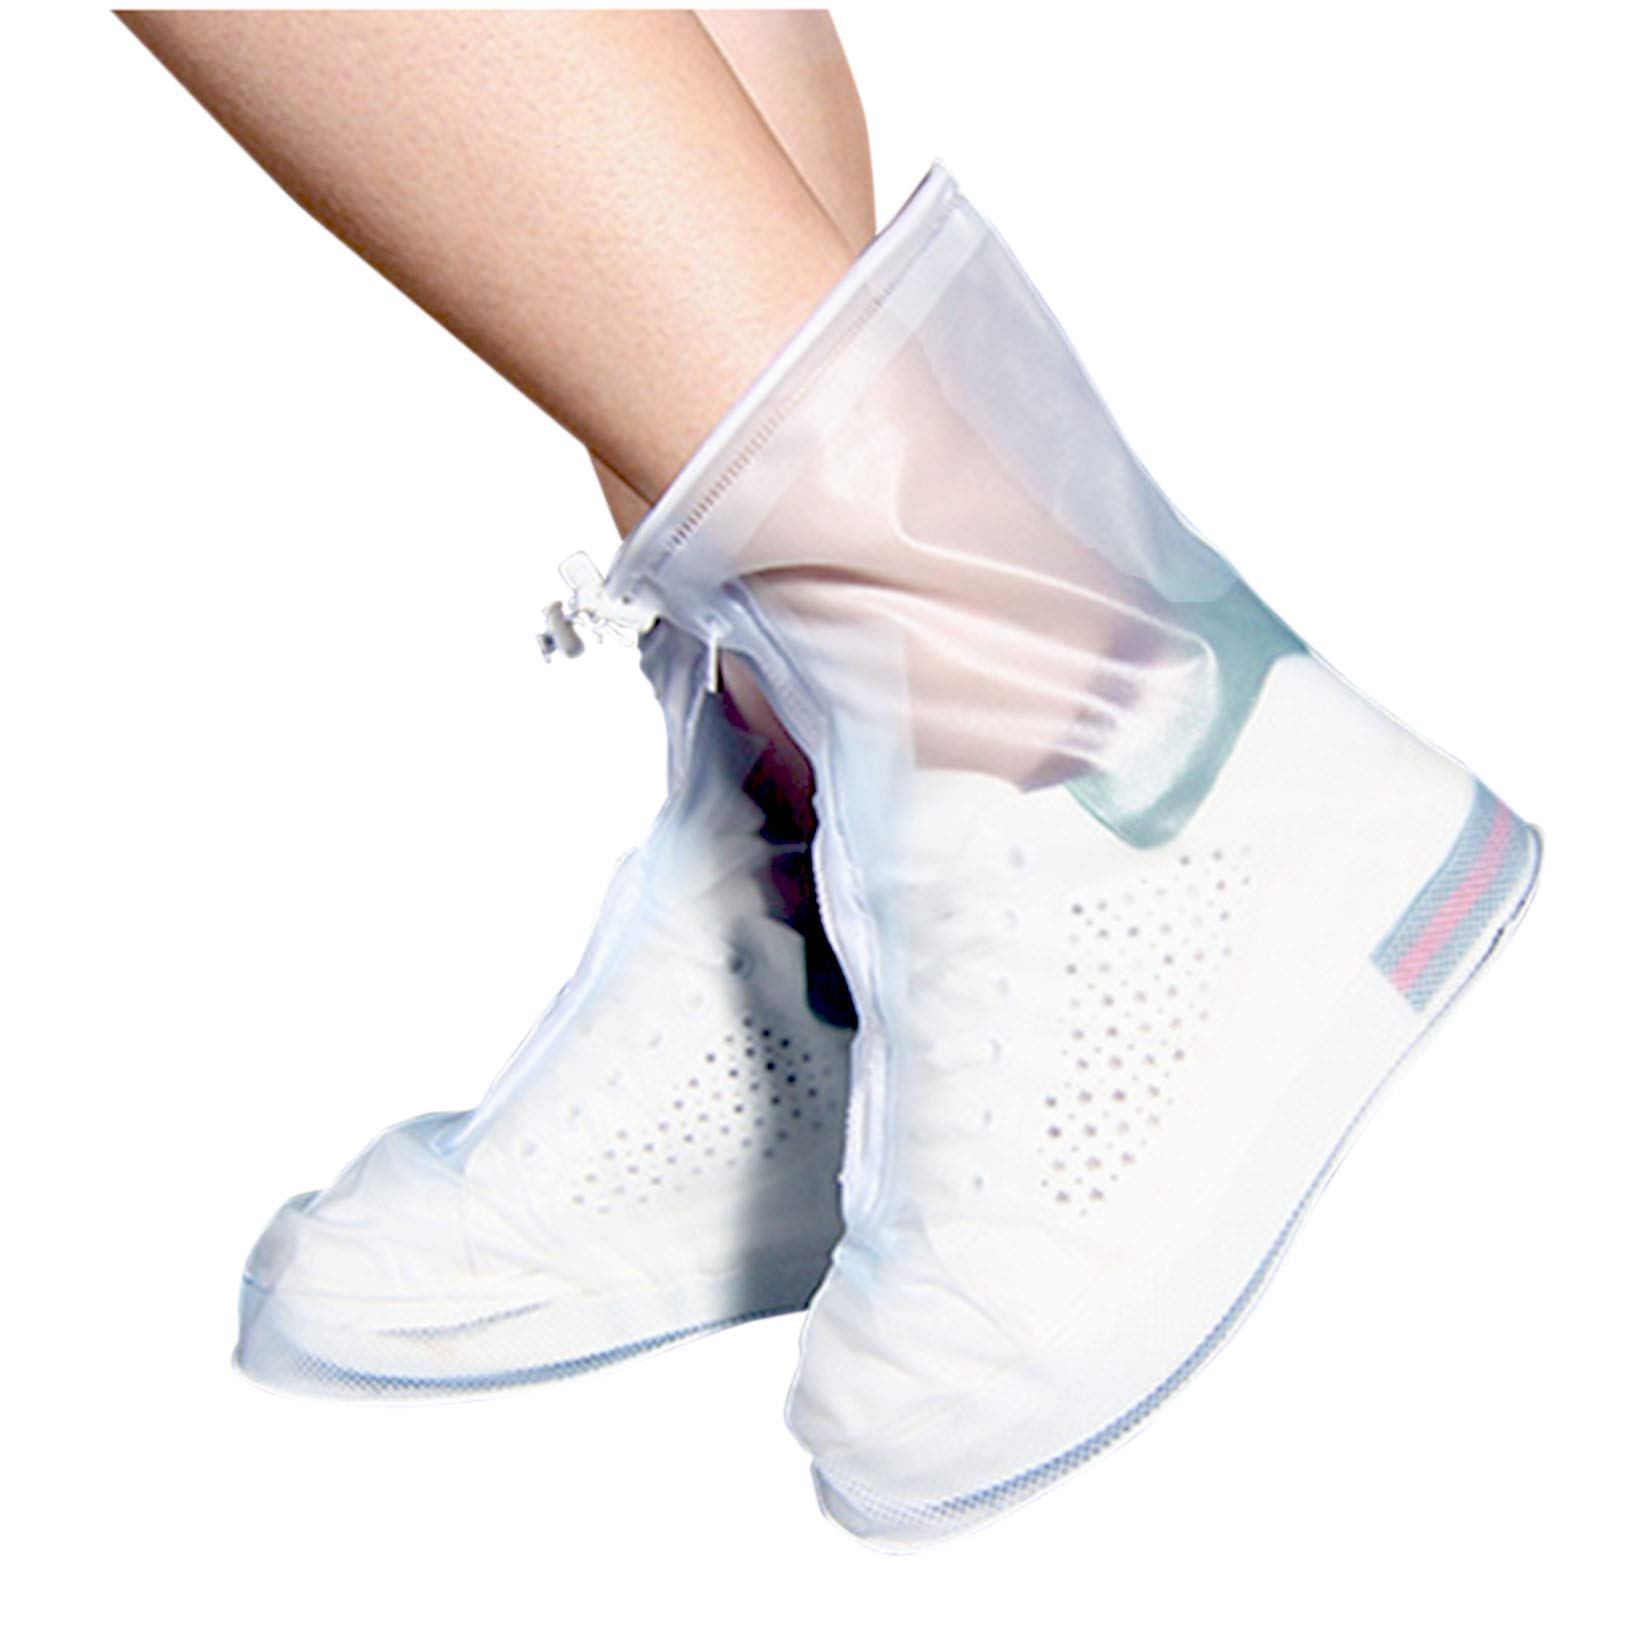 ARUNNERS Rain Shoes Boots Covers Overshoes Galoshes Travel for Women(M,White)